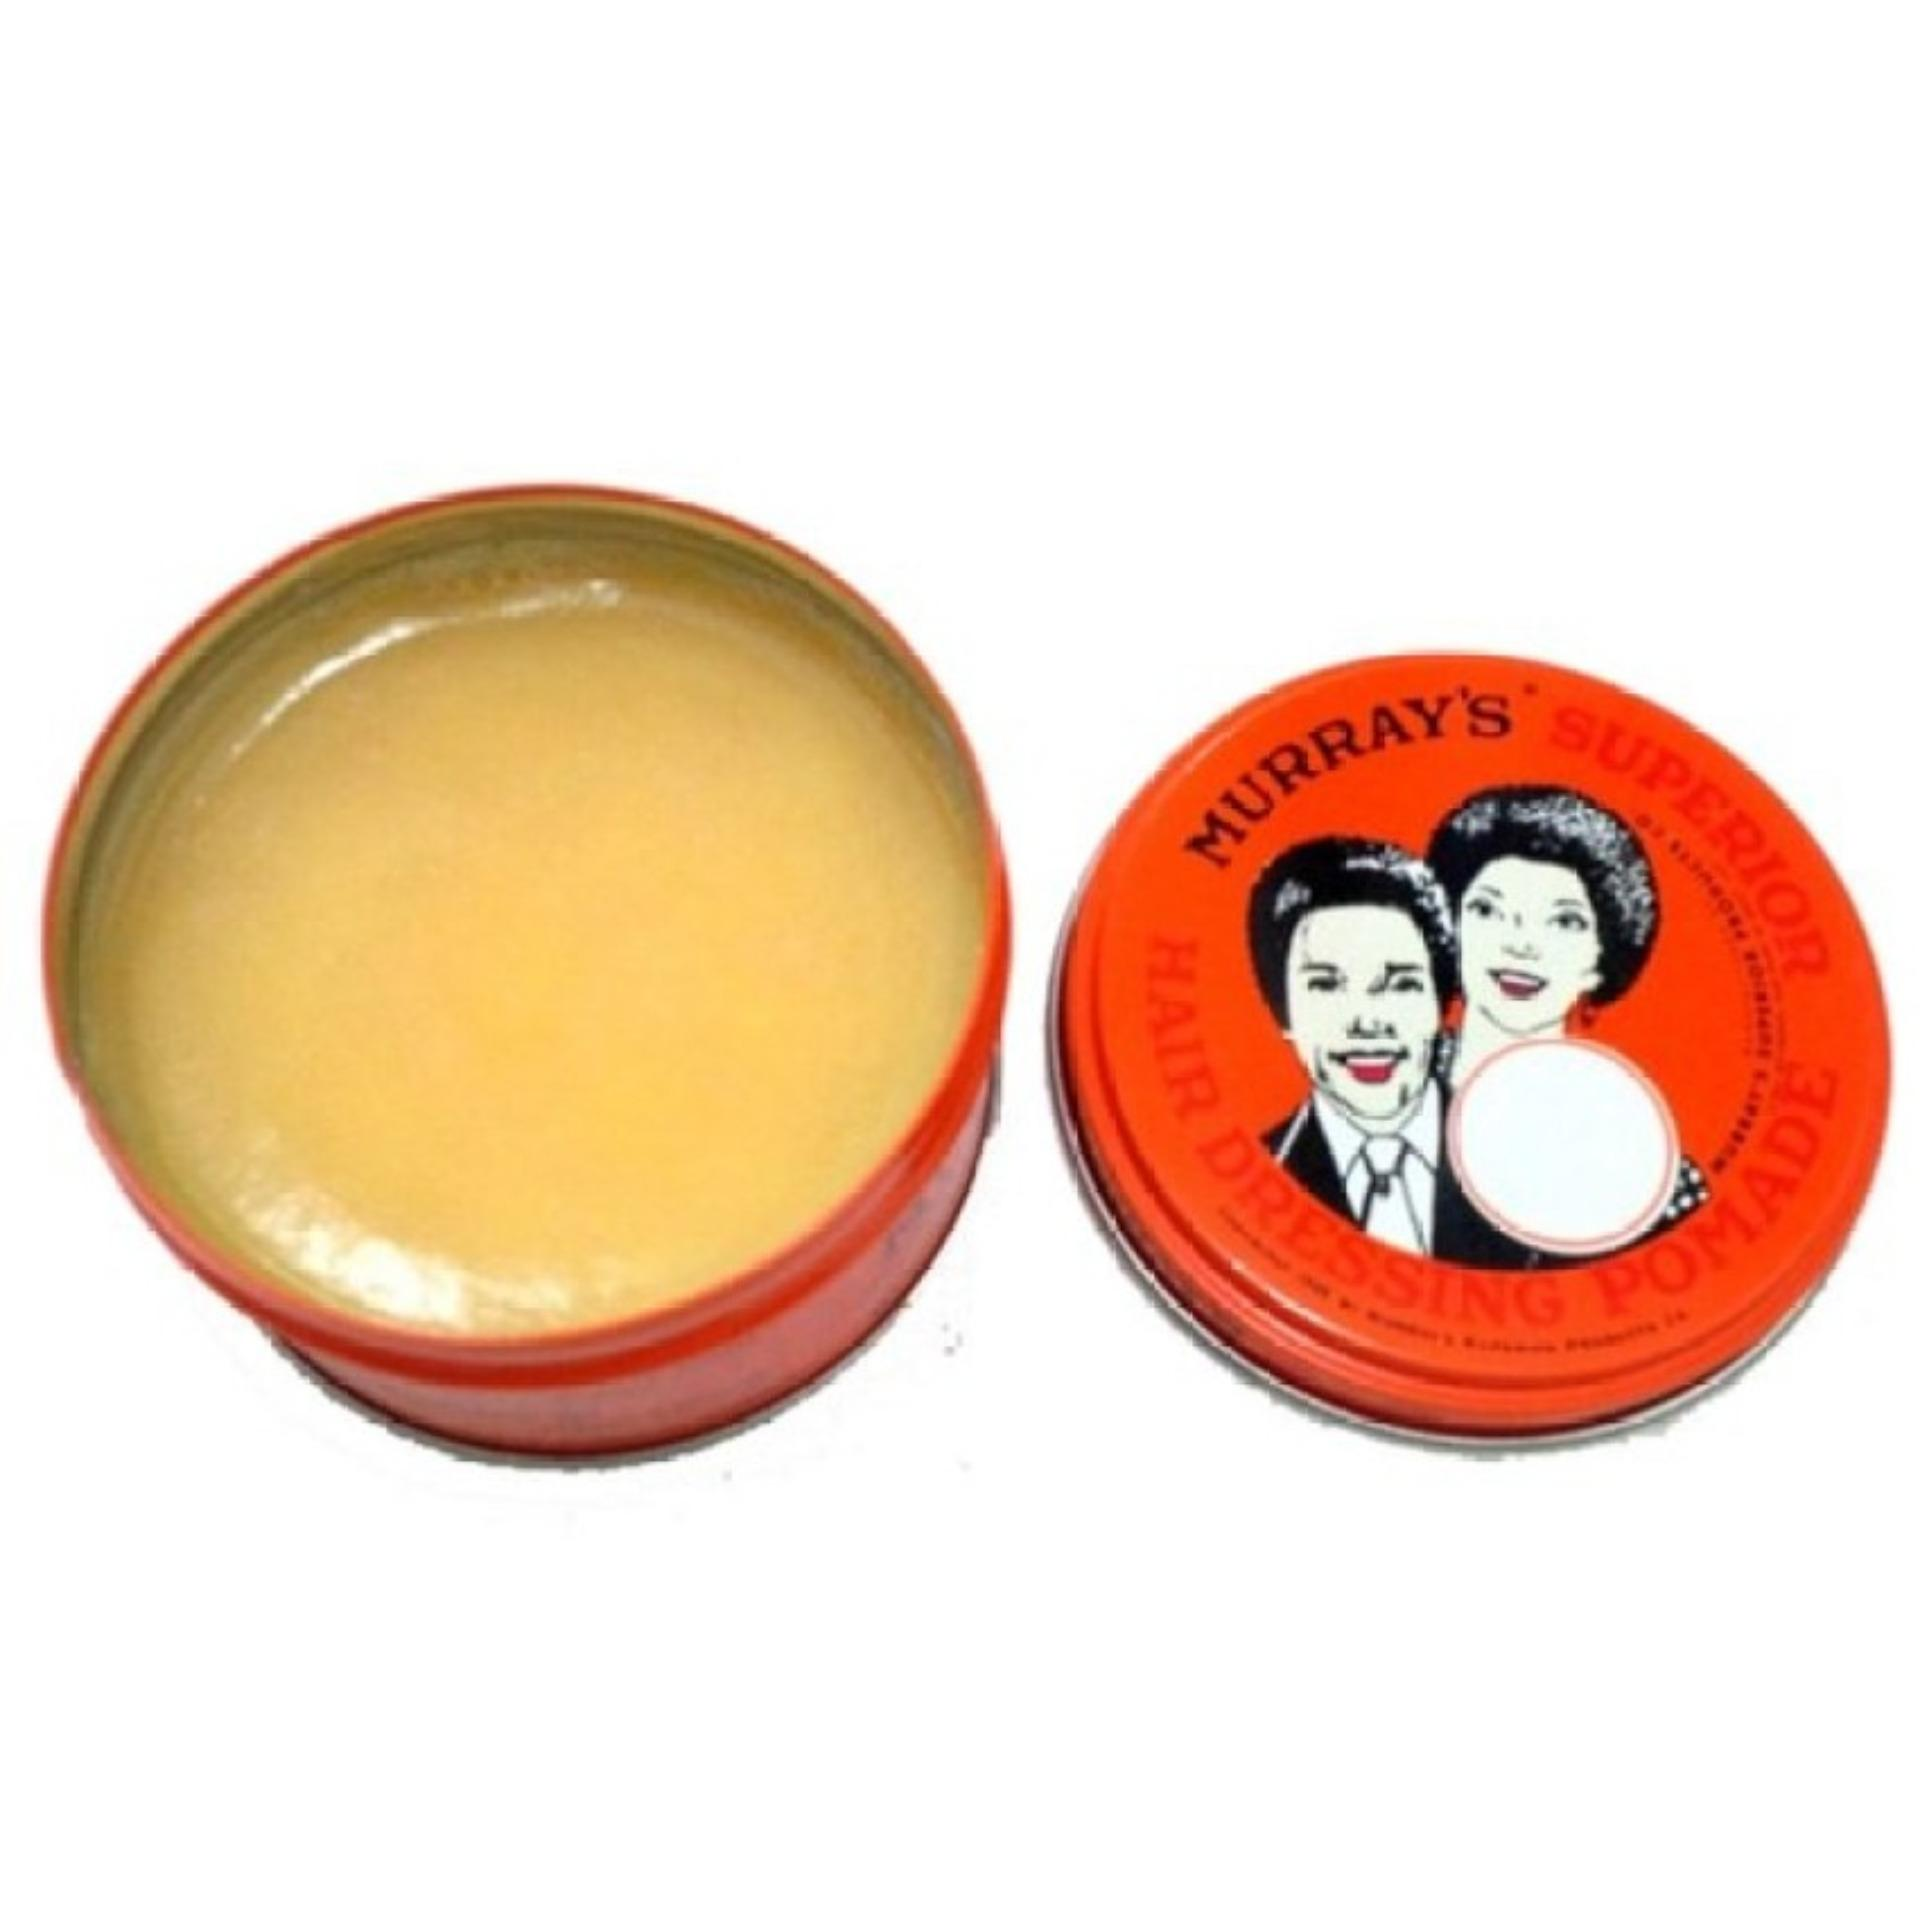 PROMO..! Pomade murrays Terlaris